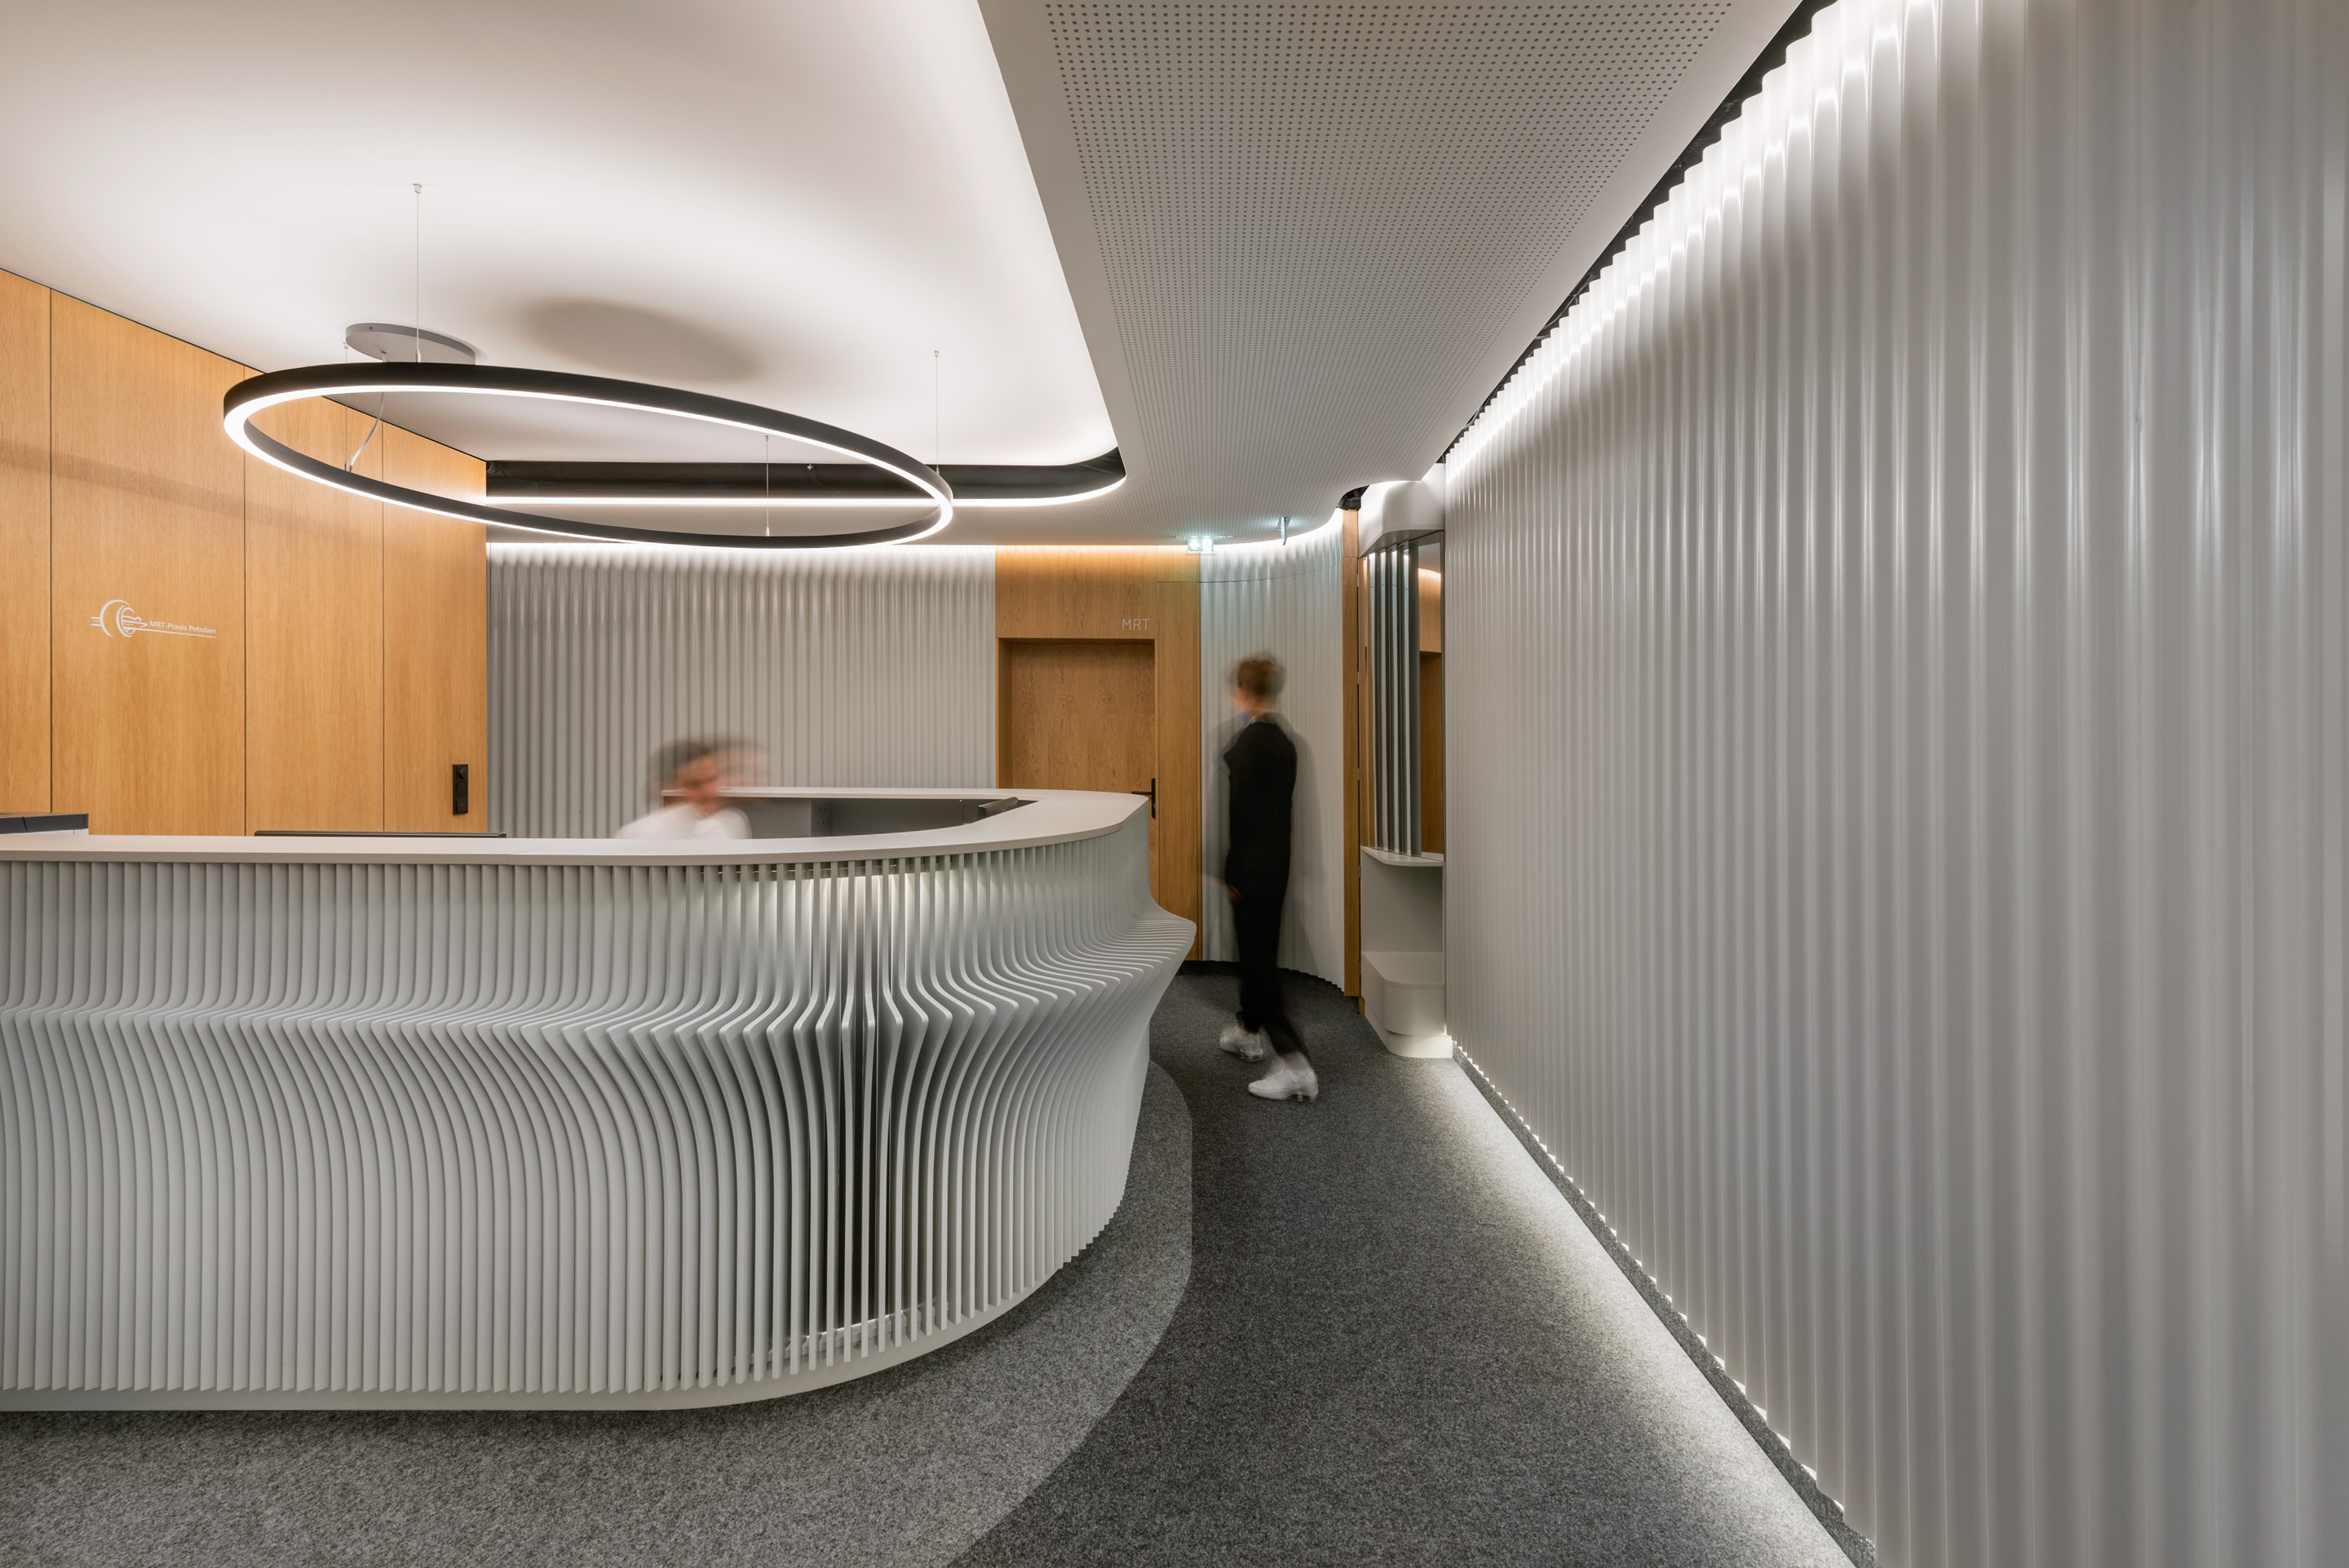 Reception room of a radiology center displaying wood paneled walls, accentuated lighting and a futuristic reception desk